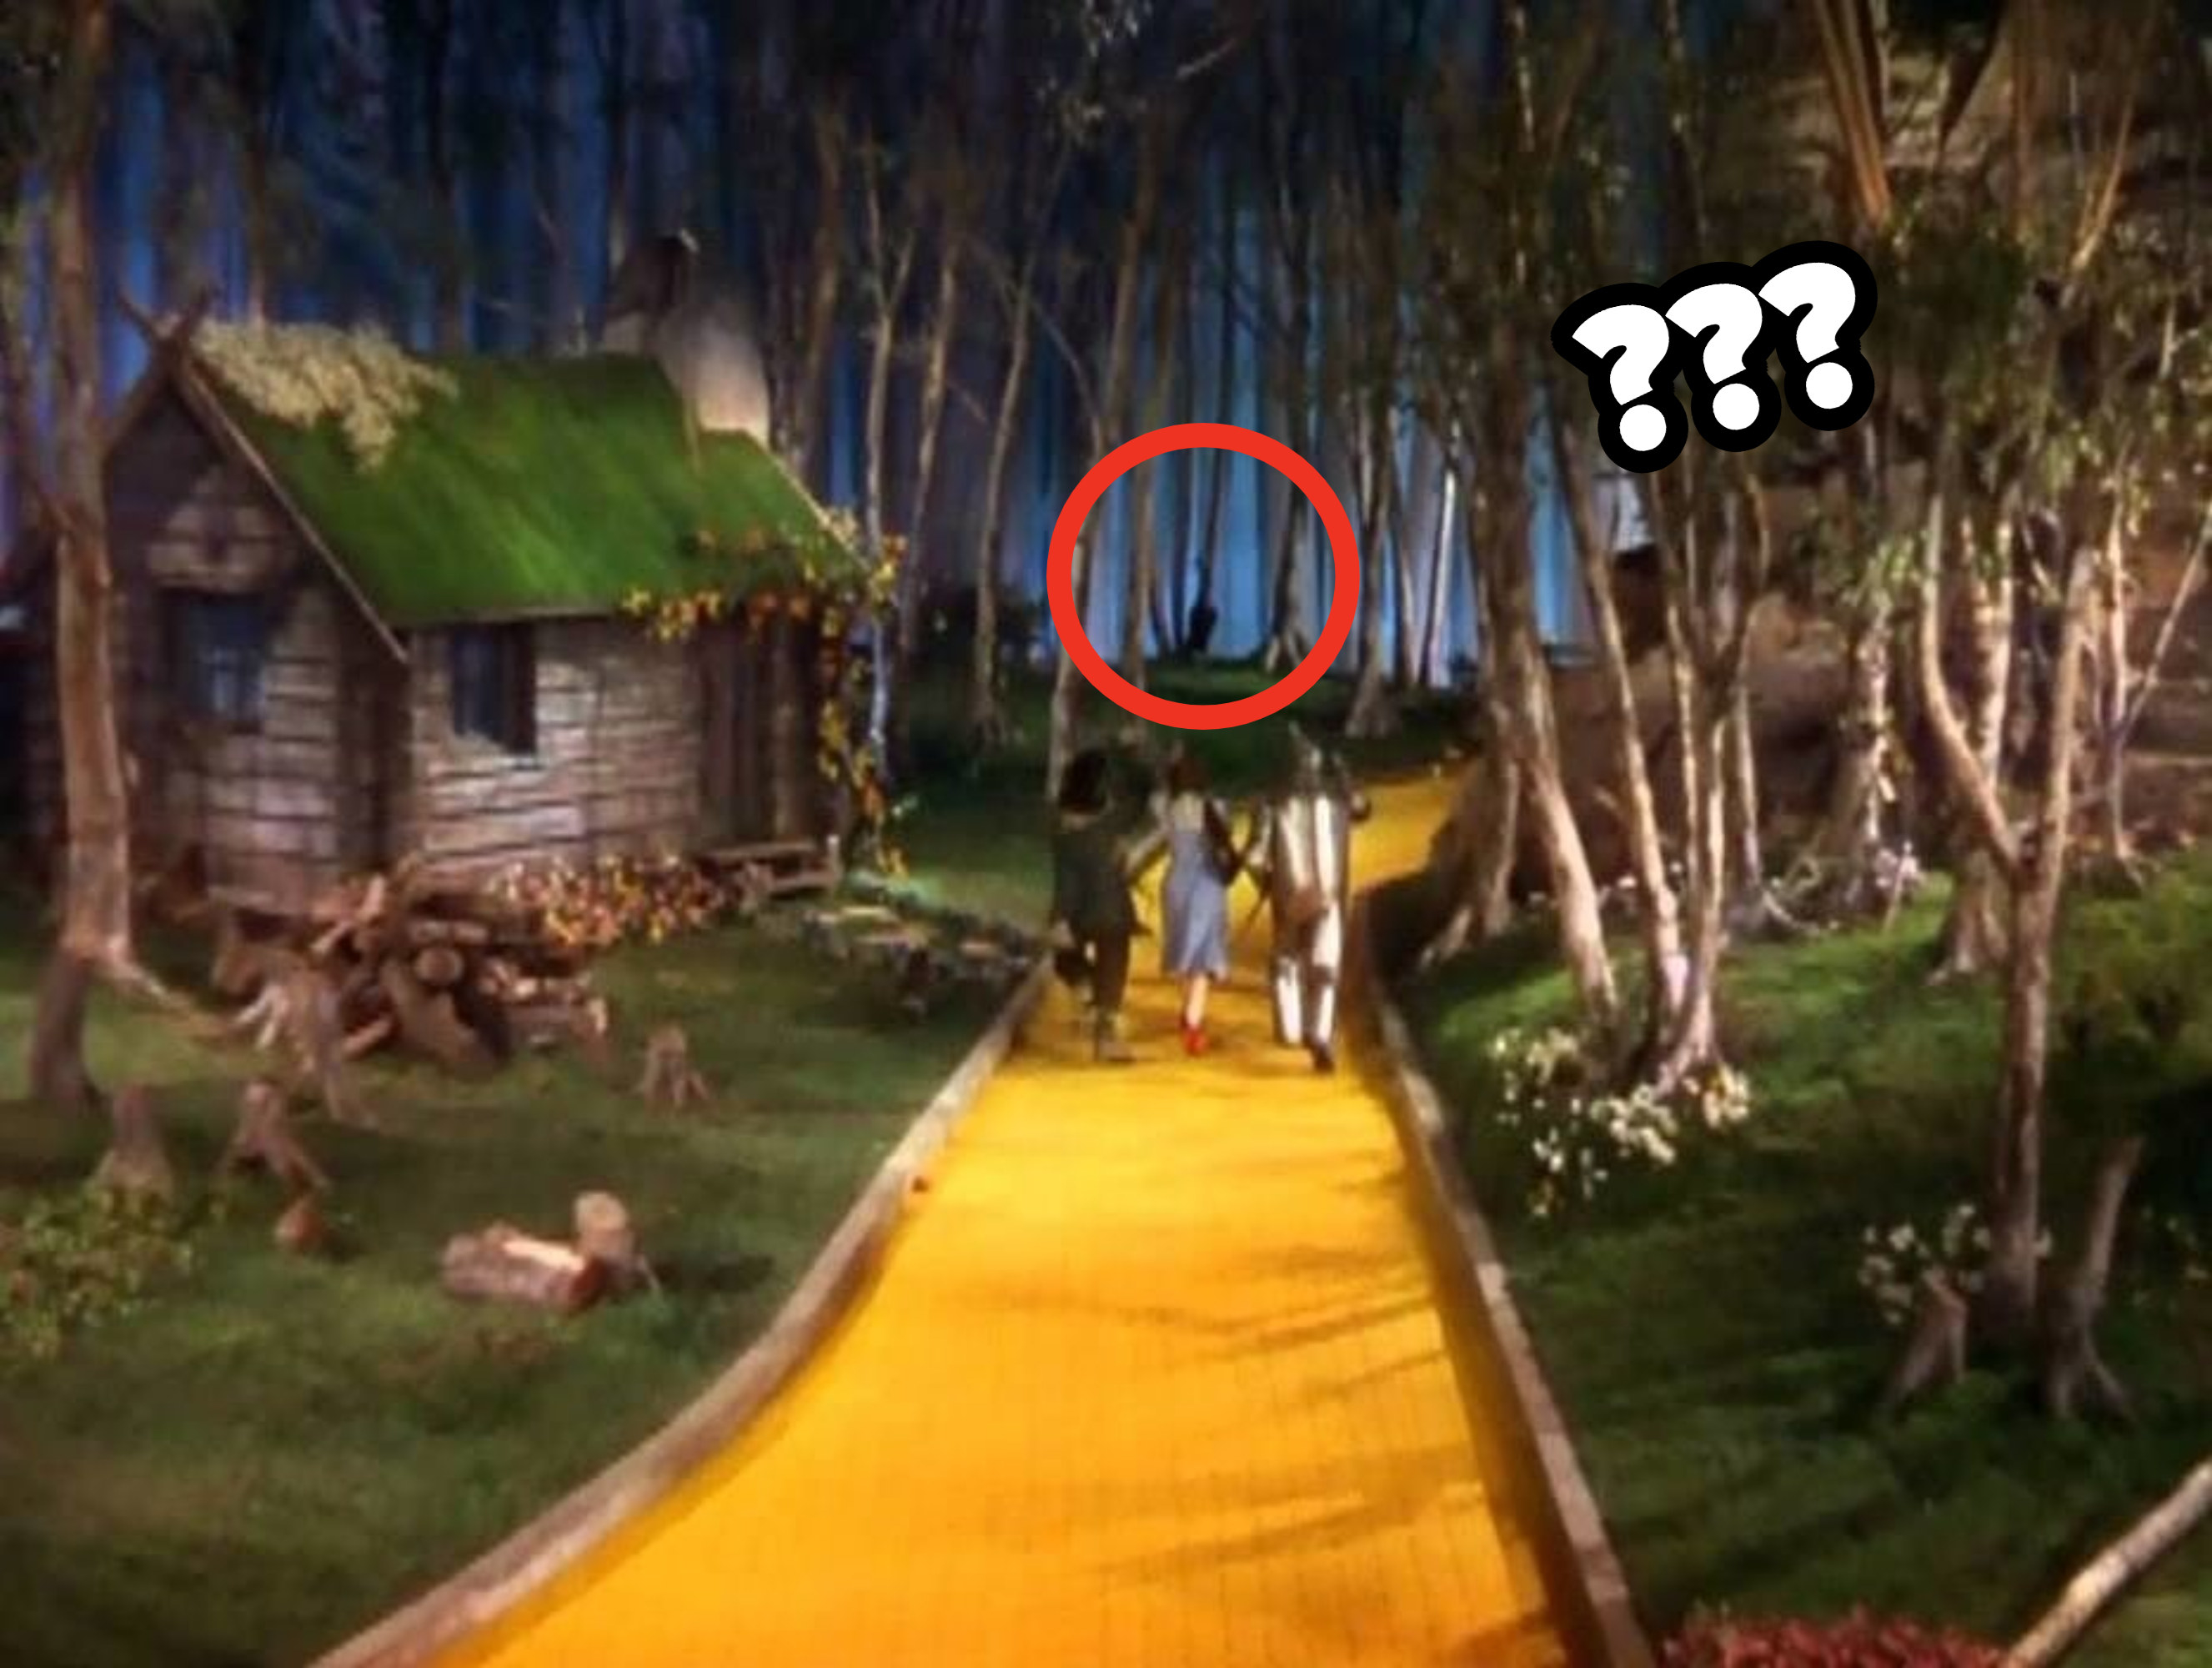 Dorothy, the Scarecrow, and the Tin Man skipping arm in arm while a mysterious black object hangs from a tree in the background